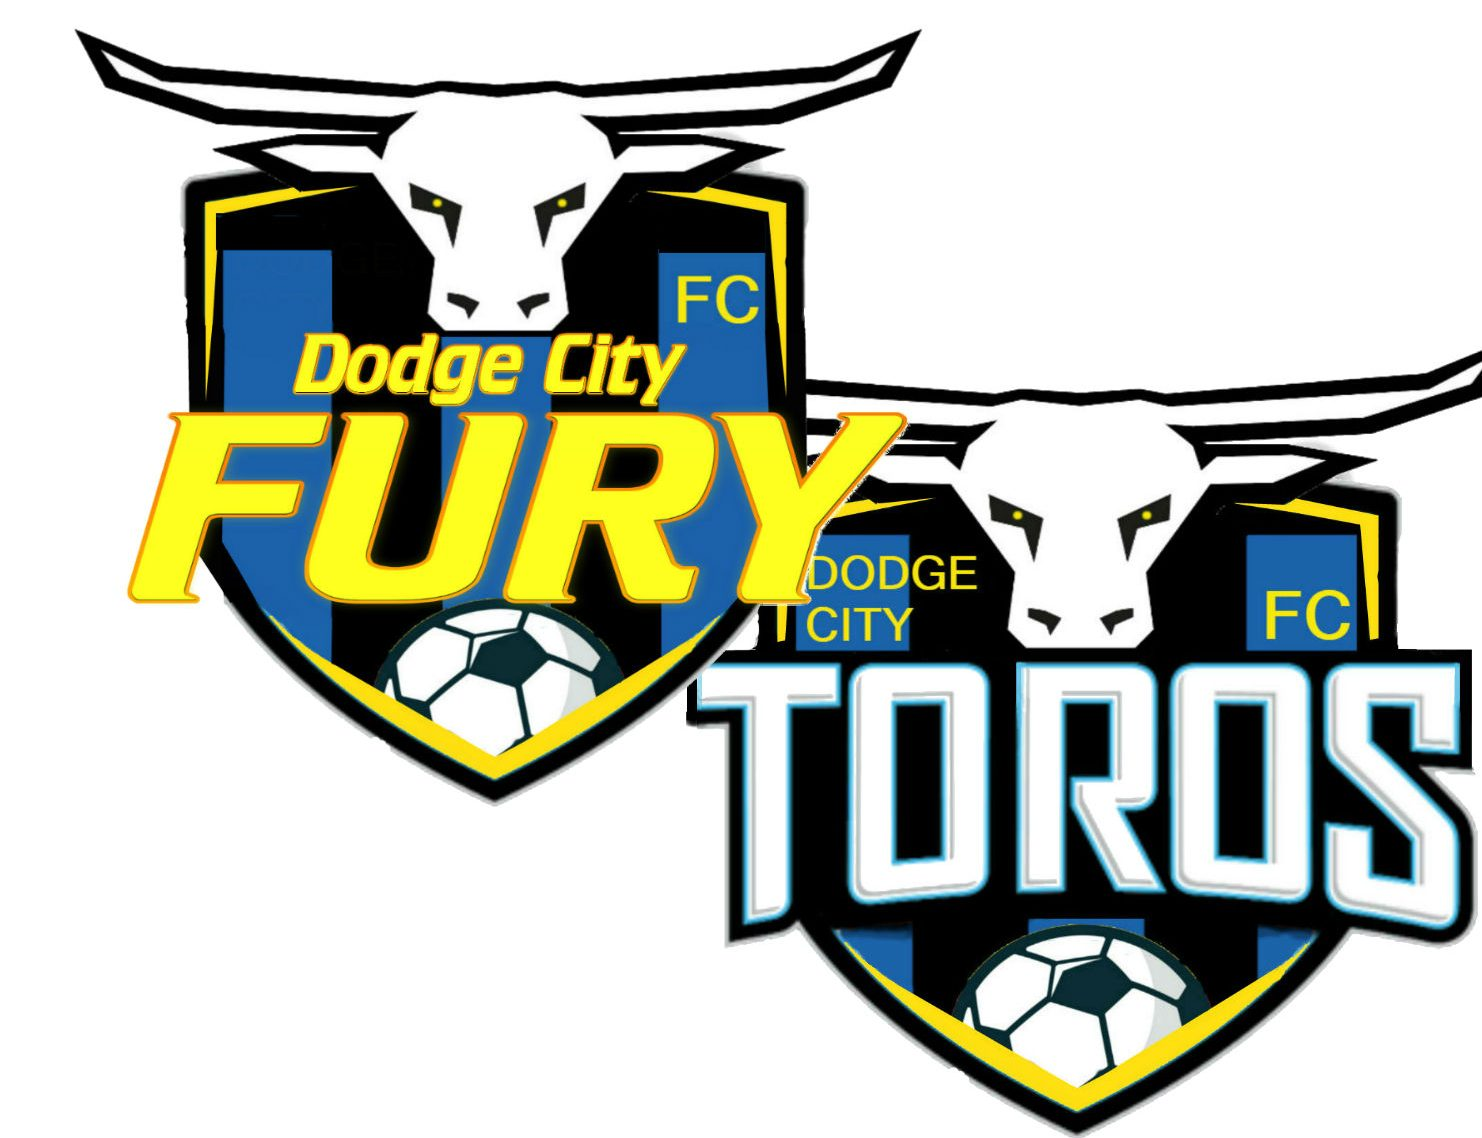 Dodge City Youth Soccer Club Academy